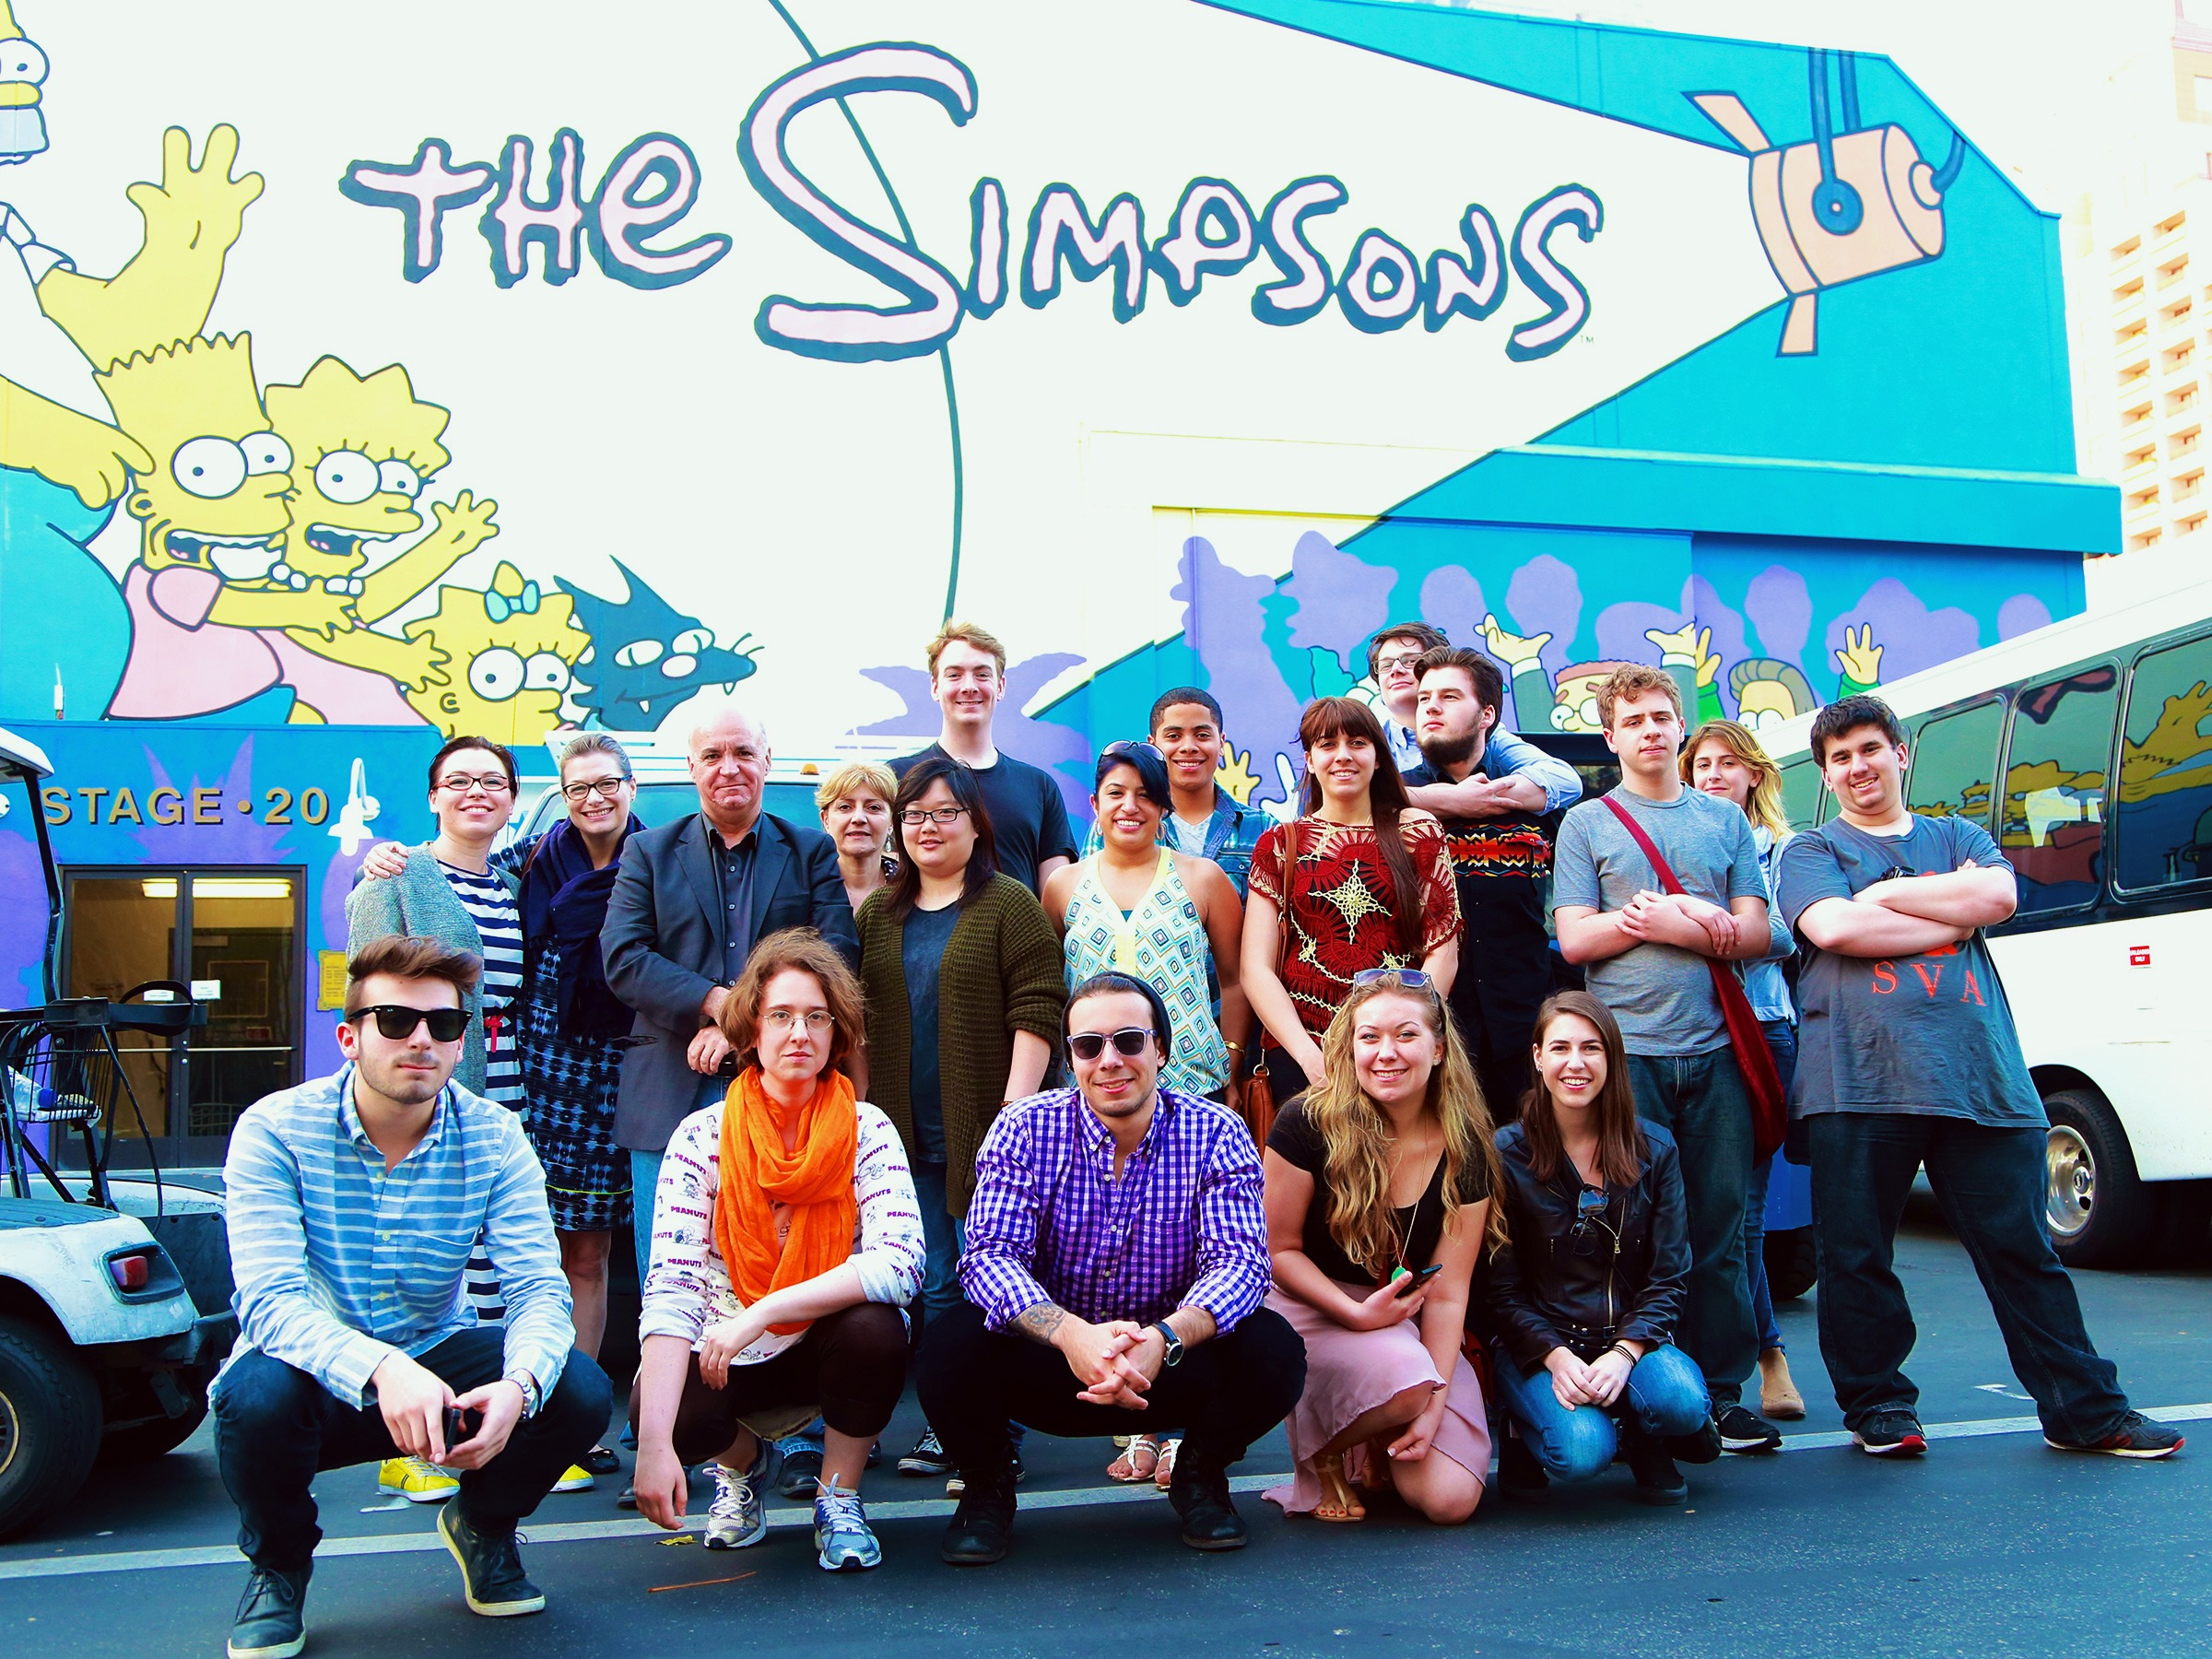 A group of people poses in front of The Simpsons lot in Los Angeles.